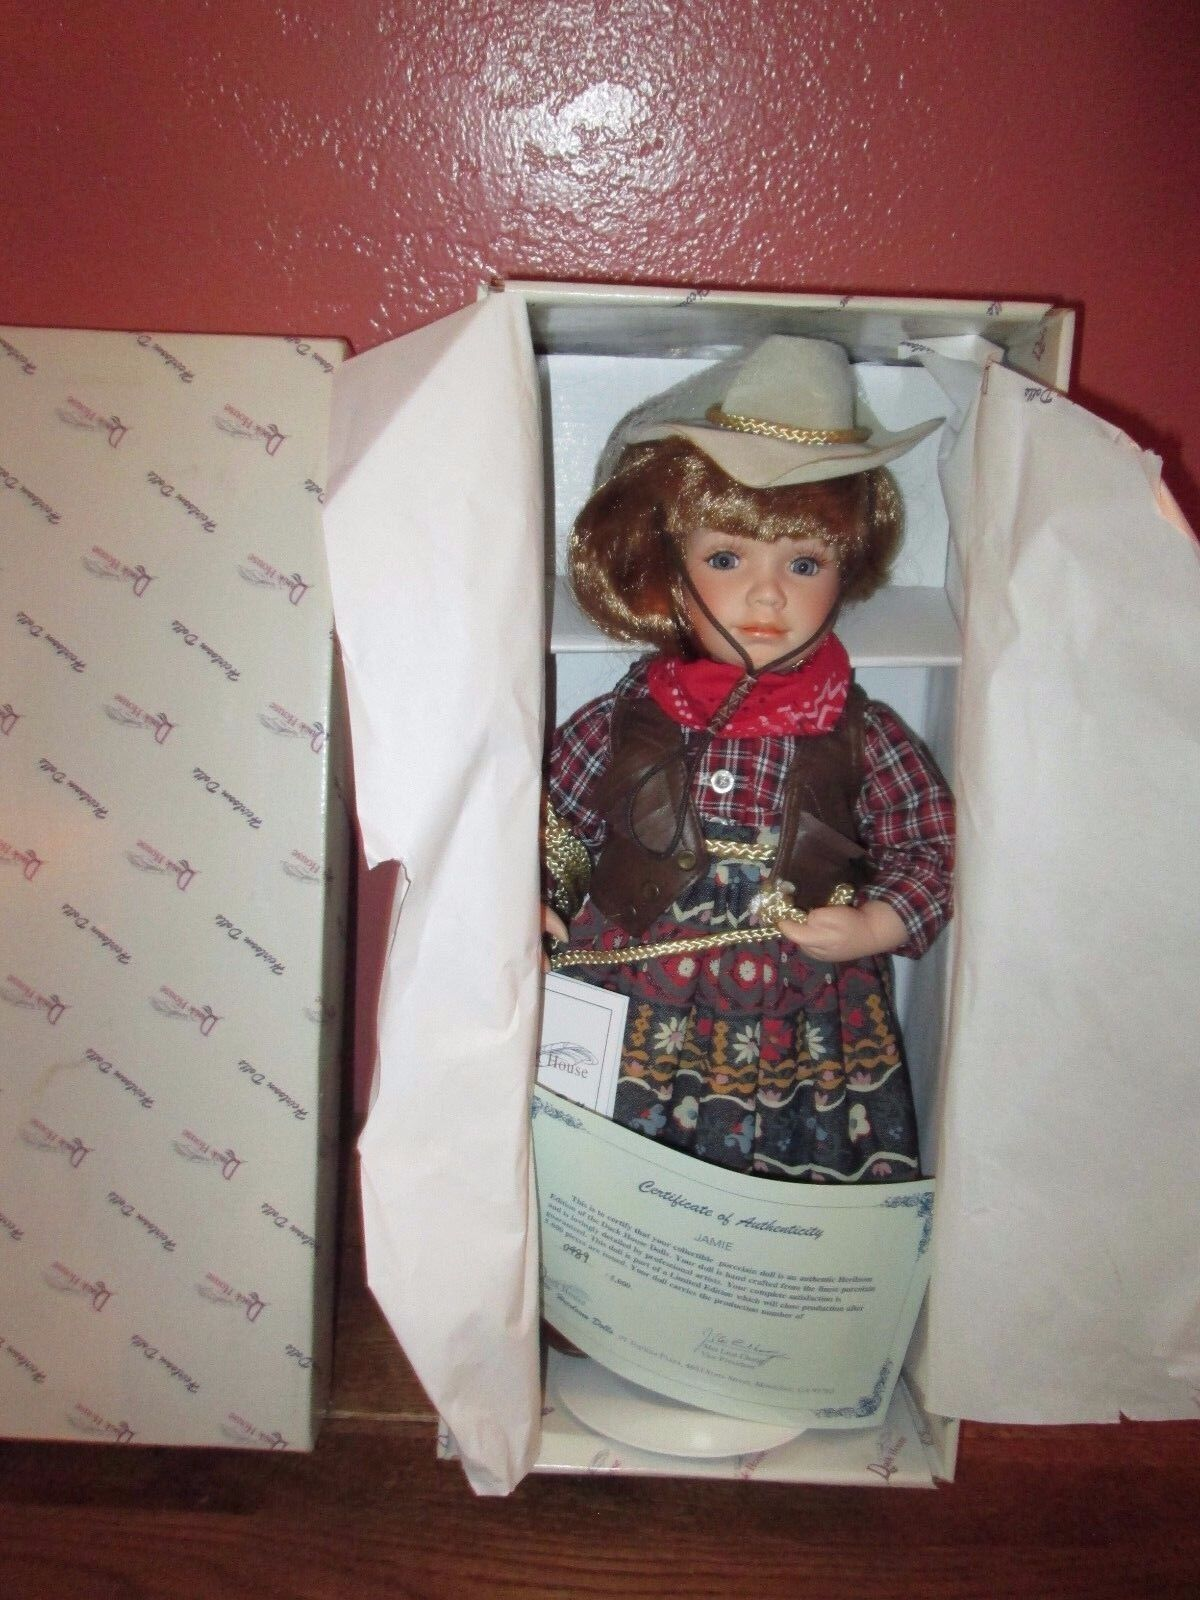 Duck haus Heirloom Porcelain Doll JAMIE Cowgirl 489 5,000